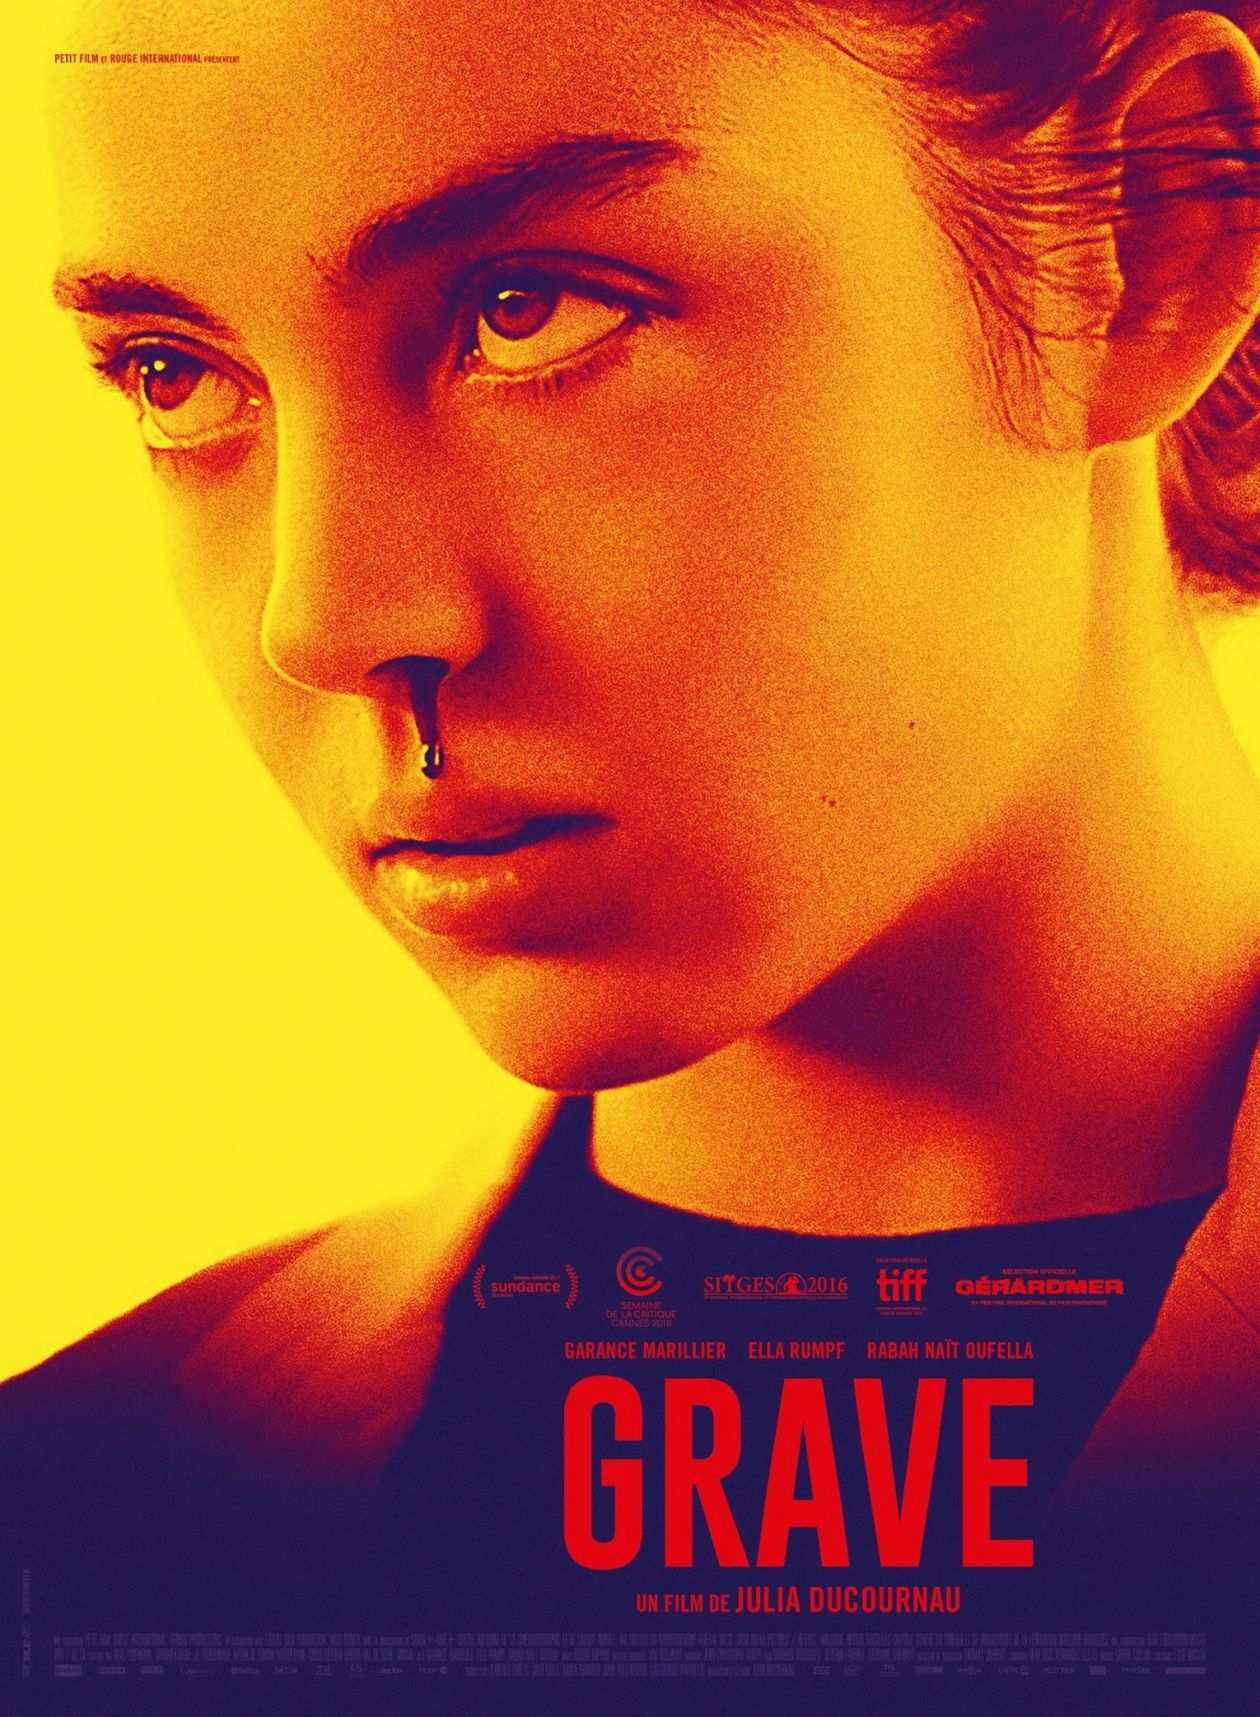 Garance Marillier French Actress | Grave / Julia Ducournau 2016 / Movie Poster / Affiche du film